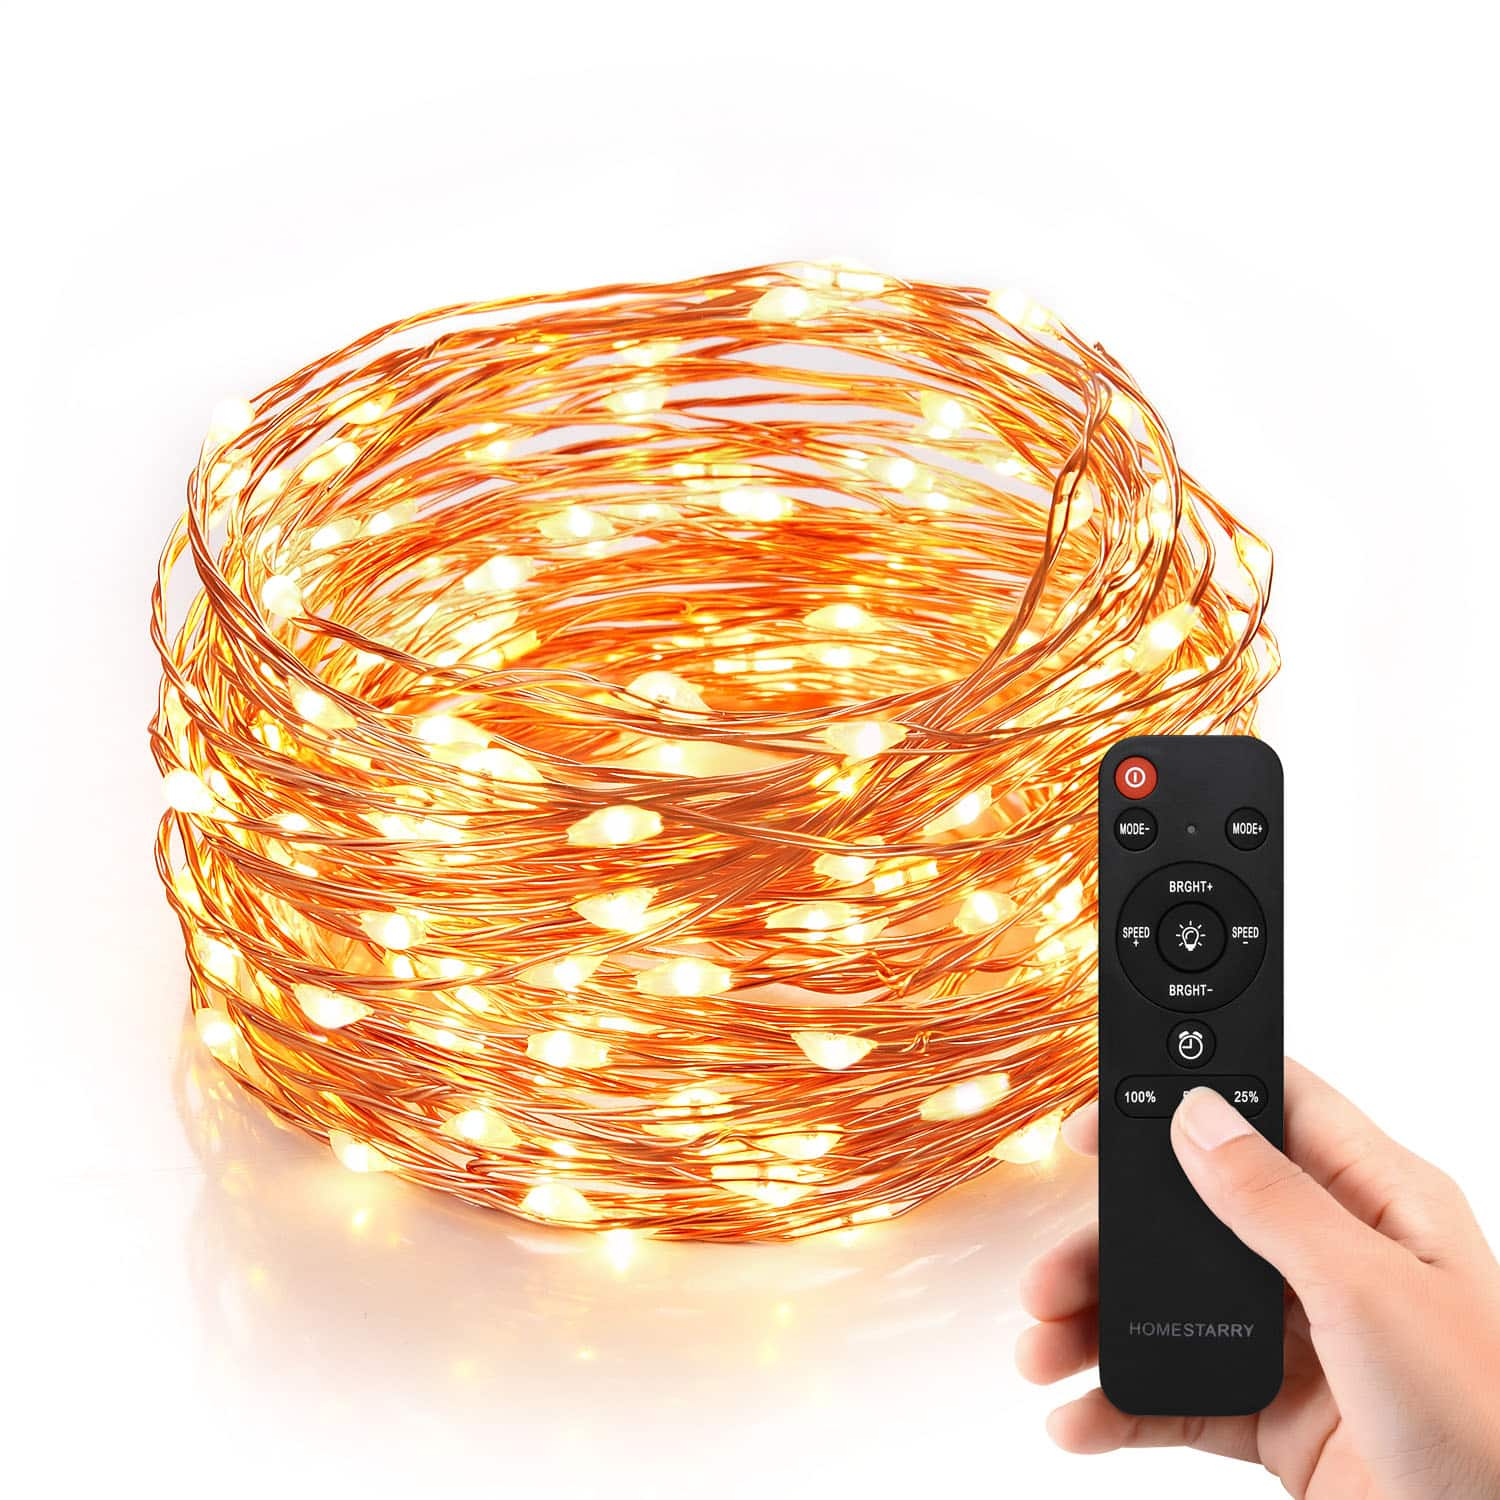 Homestarry HS-SL-010 Dimmable String Lights, 240 LED's Copper Wire, with Wireless Handheld Remote Control for $20.95 @ Amazon